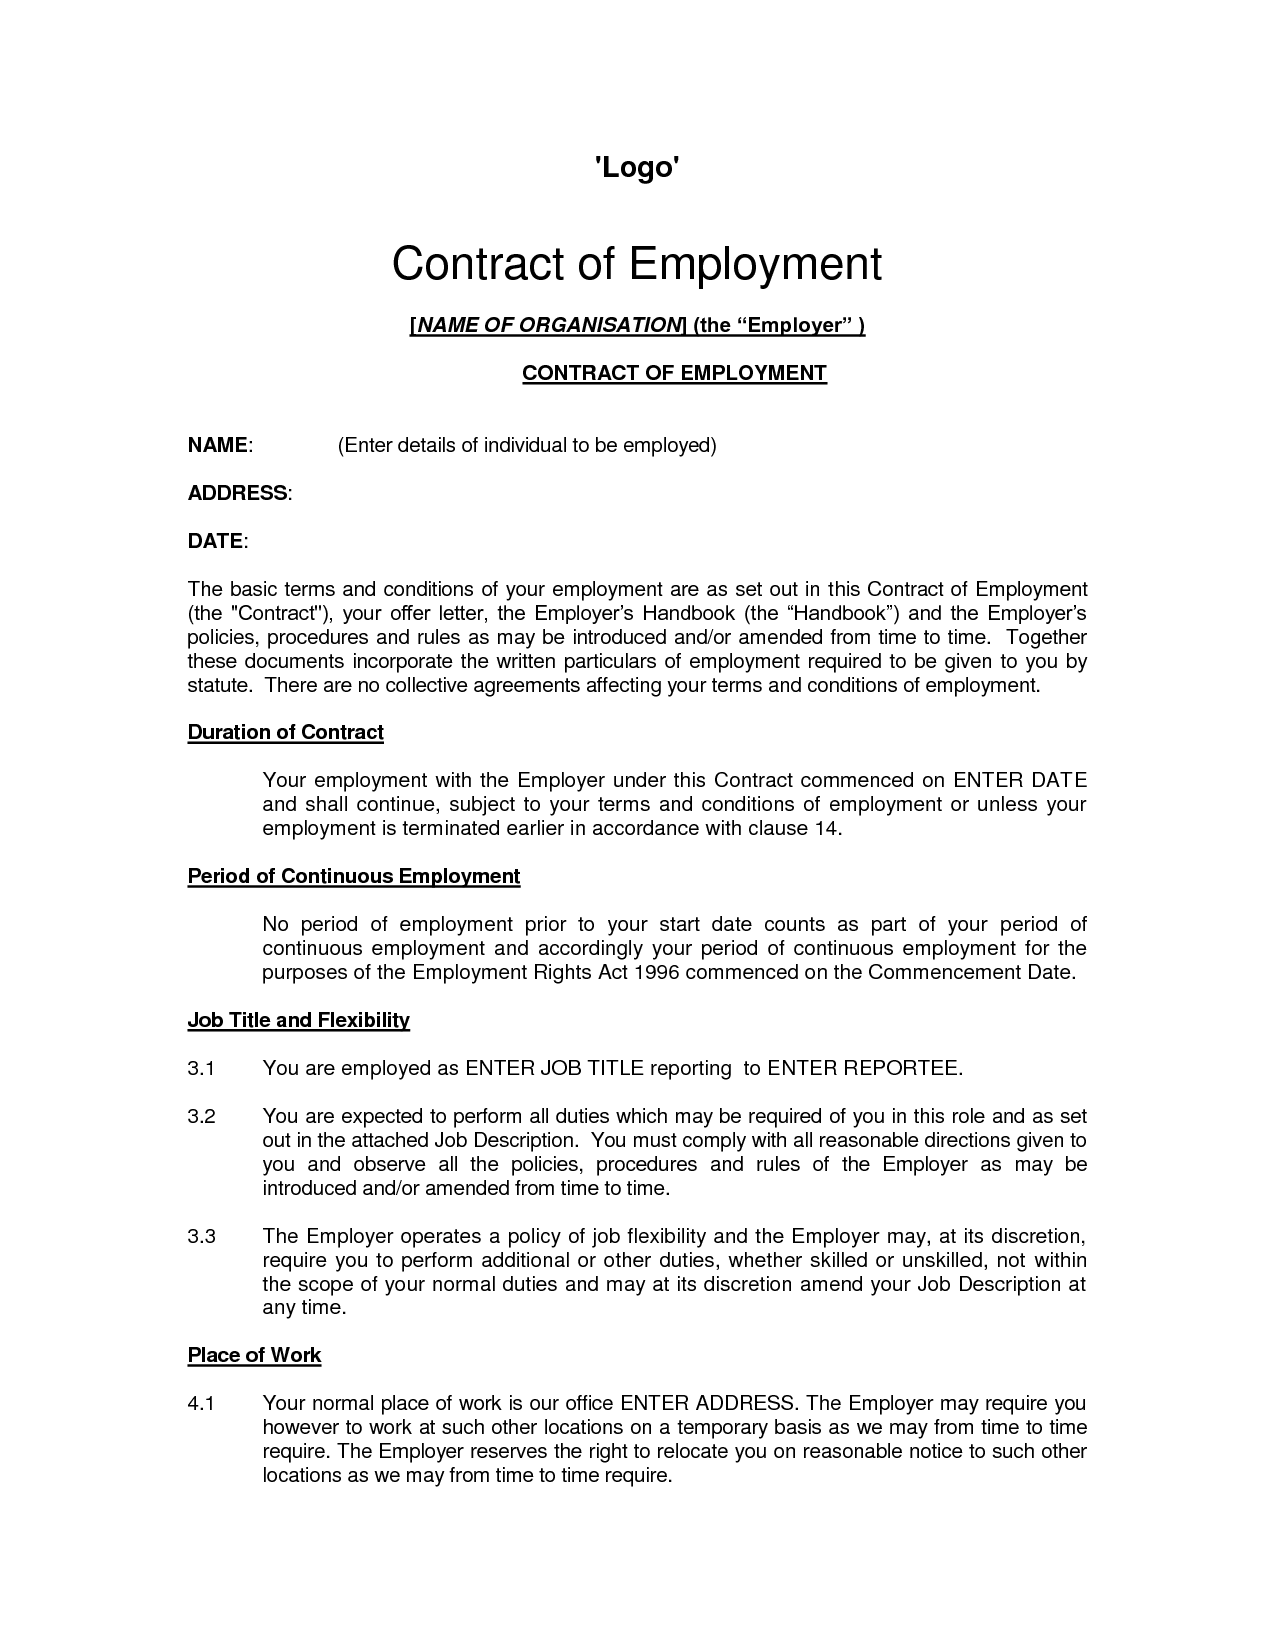 Work Agreement Contract Template self employed contract for – Self Employment Agreement